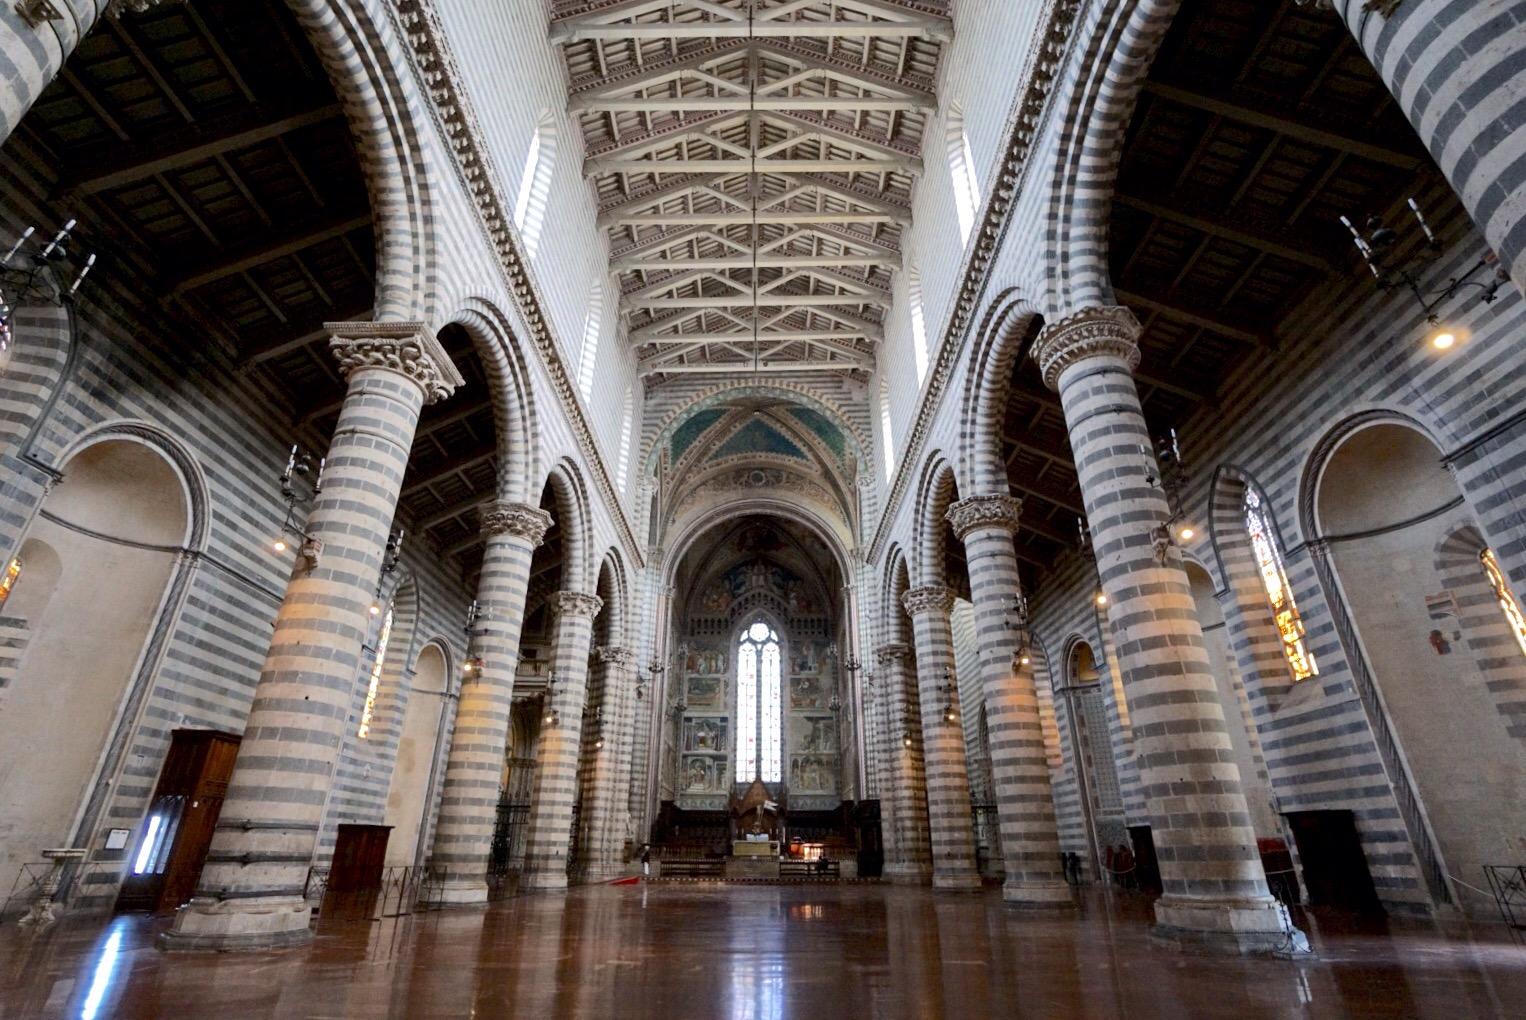 inside the duomo of Orvieto showing off its stripes